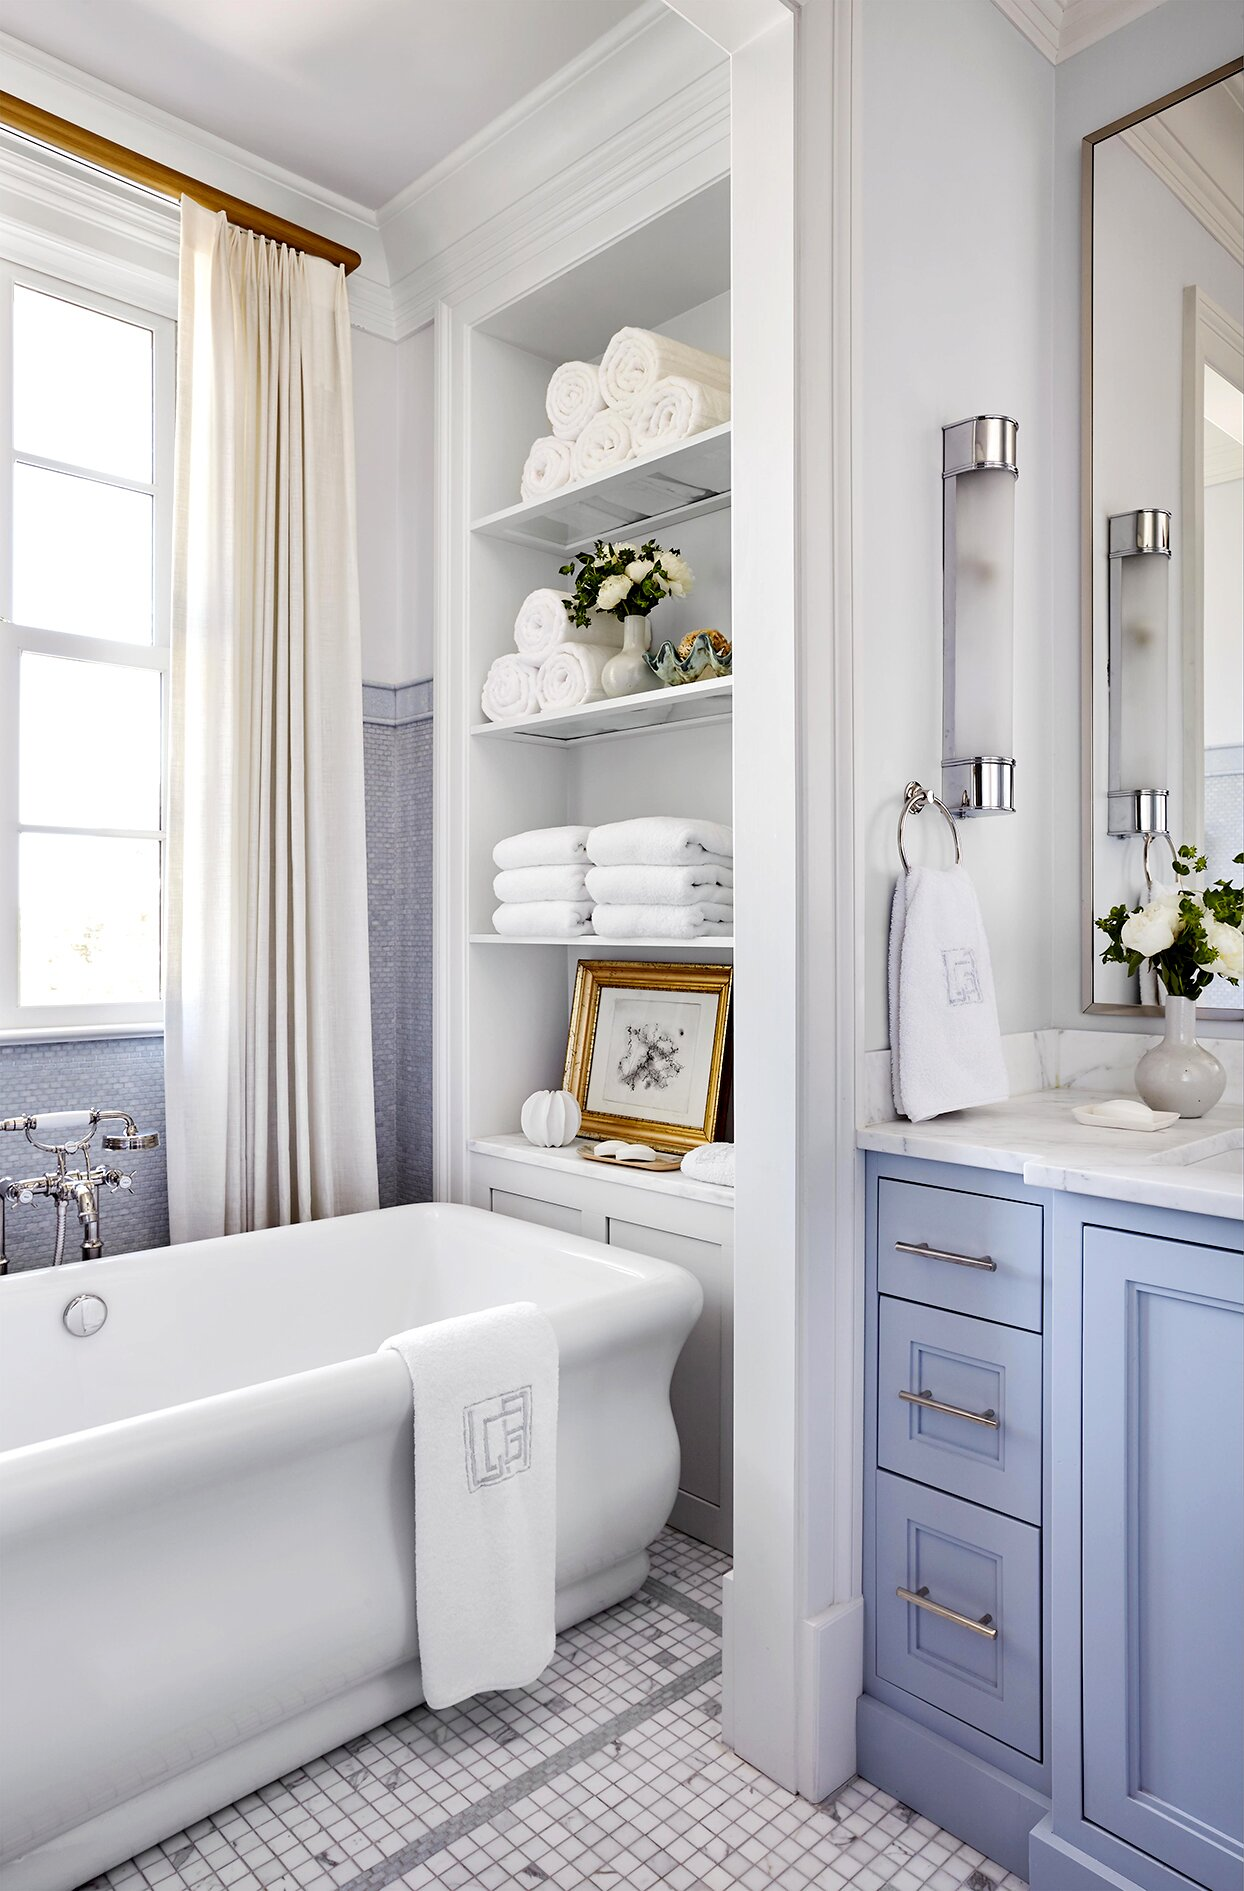 11 Bathroom Window Treatment Ideas to Dress Up Your Space  Better